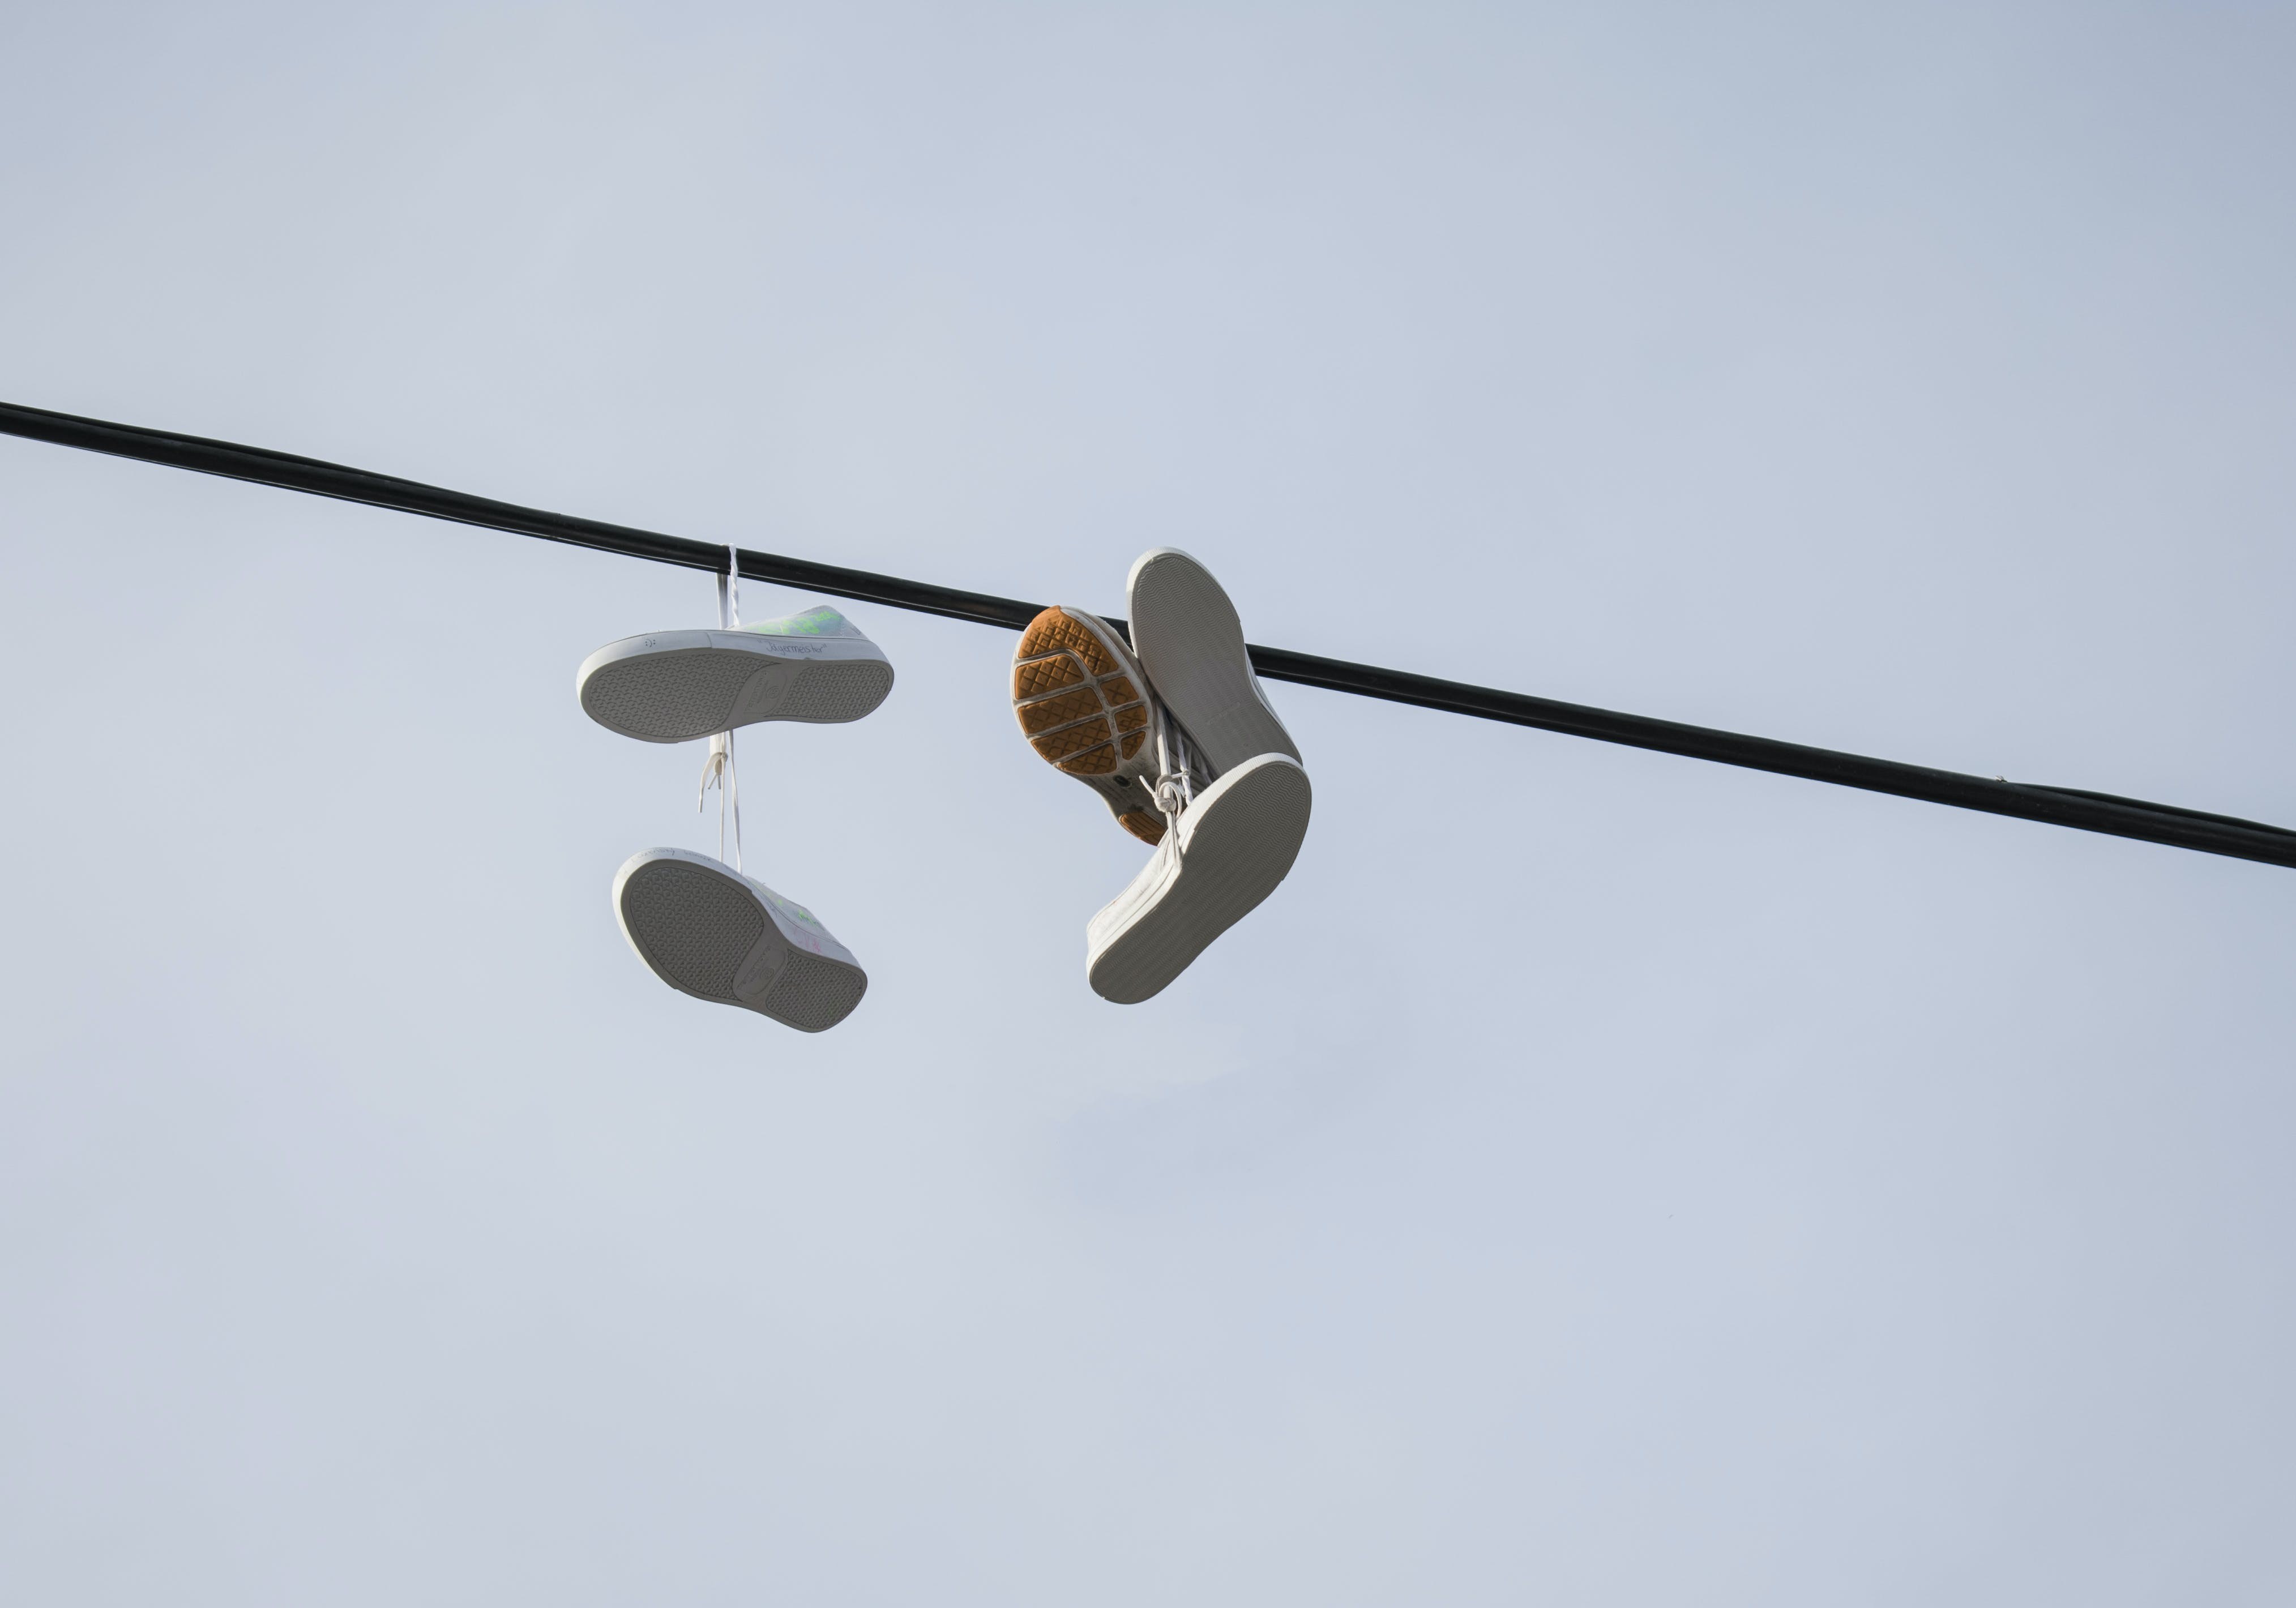 Shoes Hanged on Black Pole